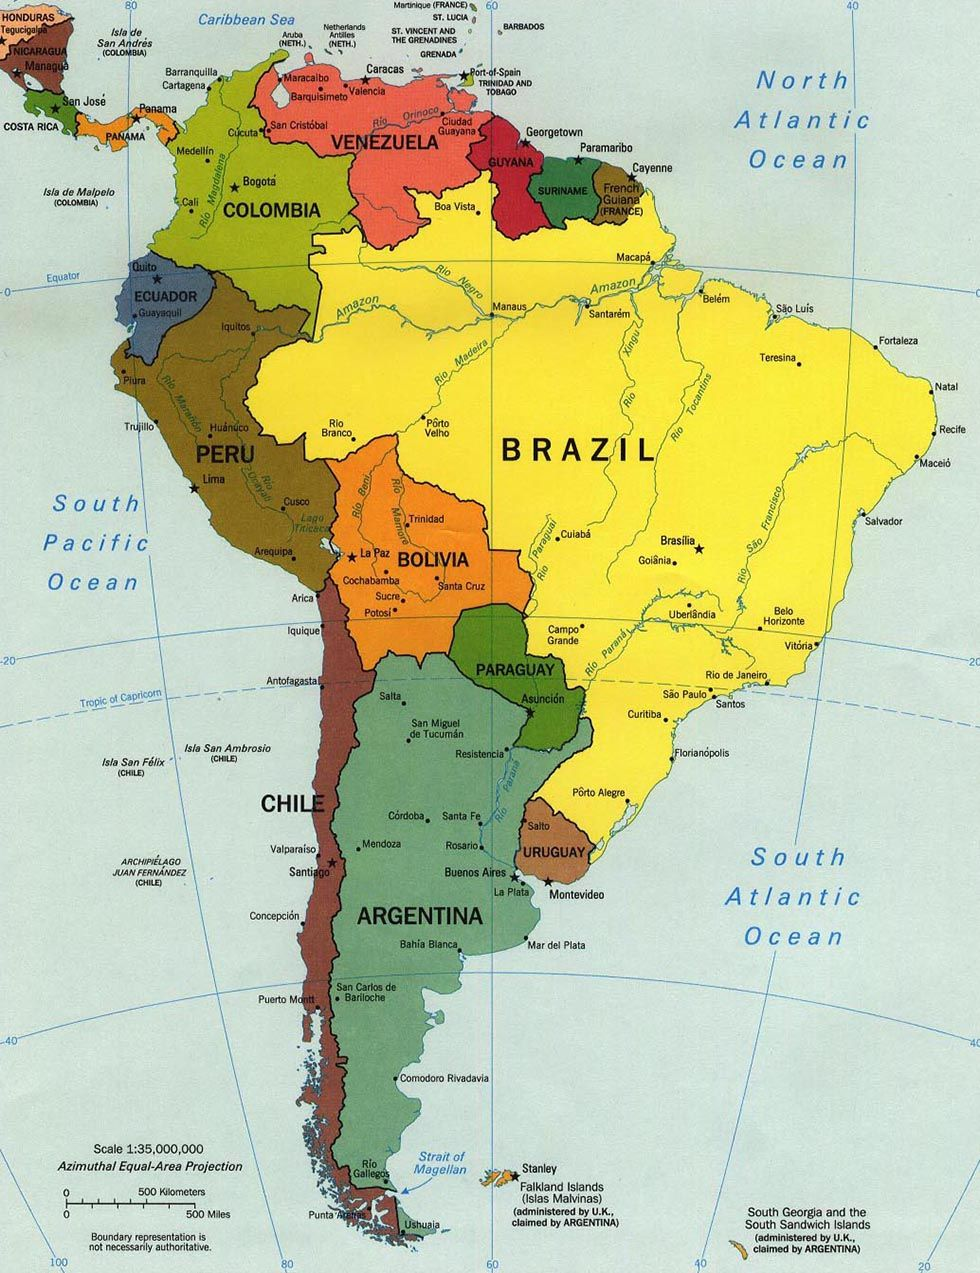 South Anerican Map South America in 2019 | Latin America. | South america map, South